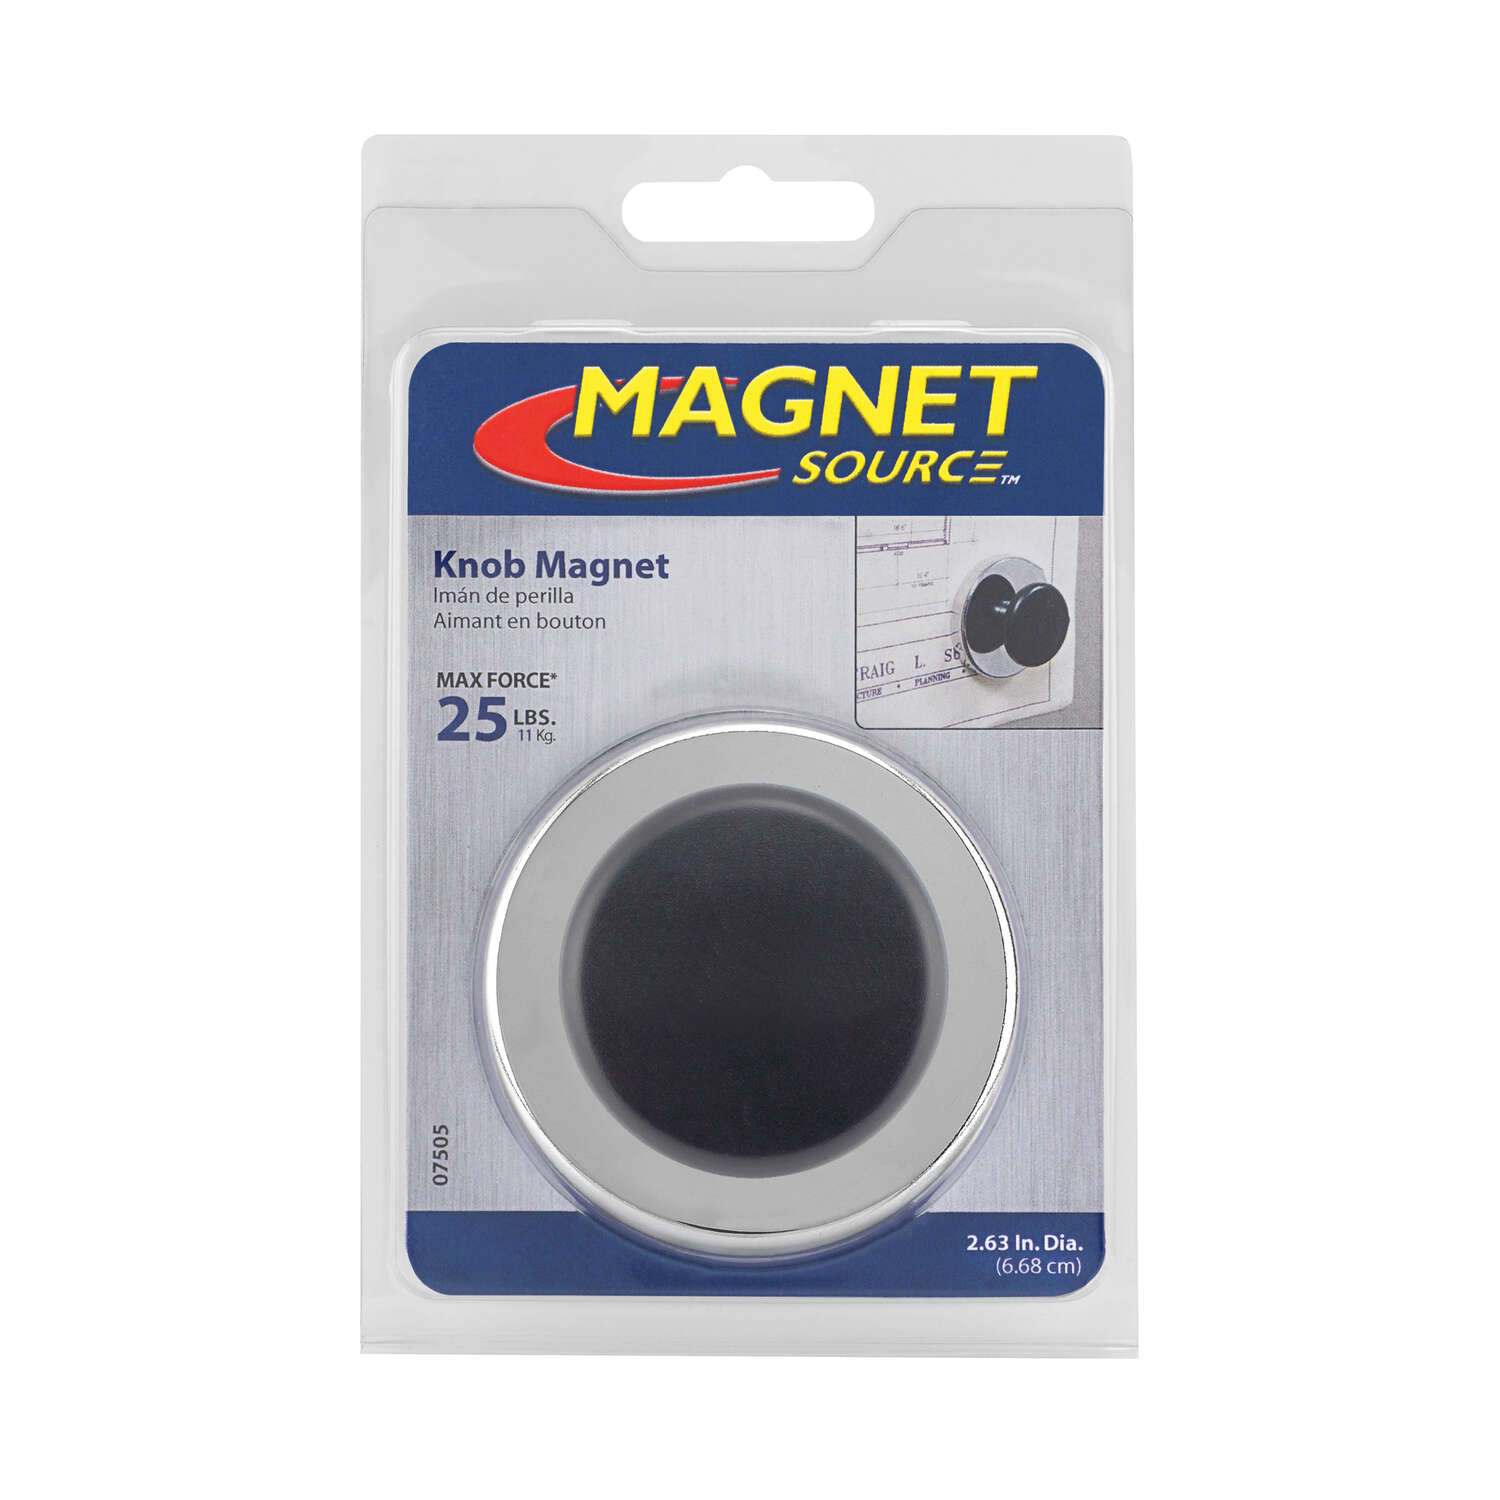 Master Magnetics  The Magnet Source  1 in. Ceramic  Knob Magnet  25 lb. pull 3.4 MGOe Black  1 pc.